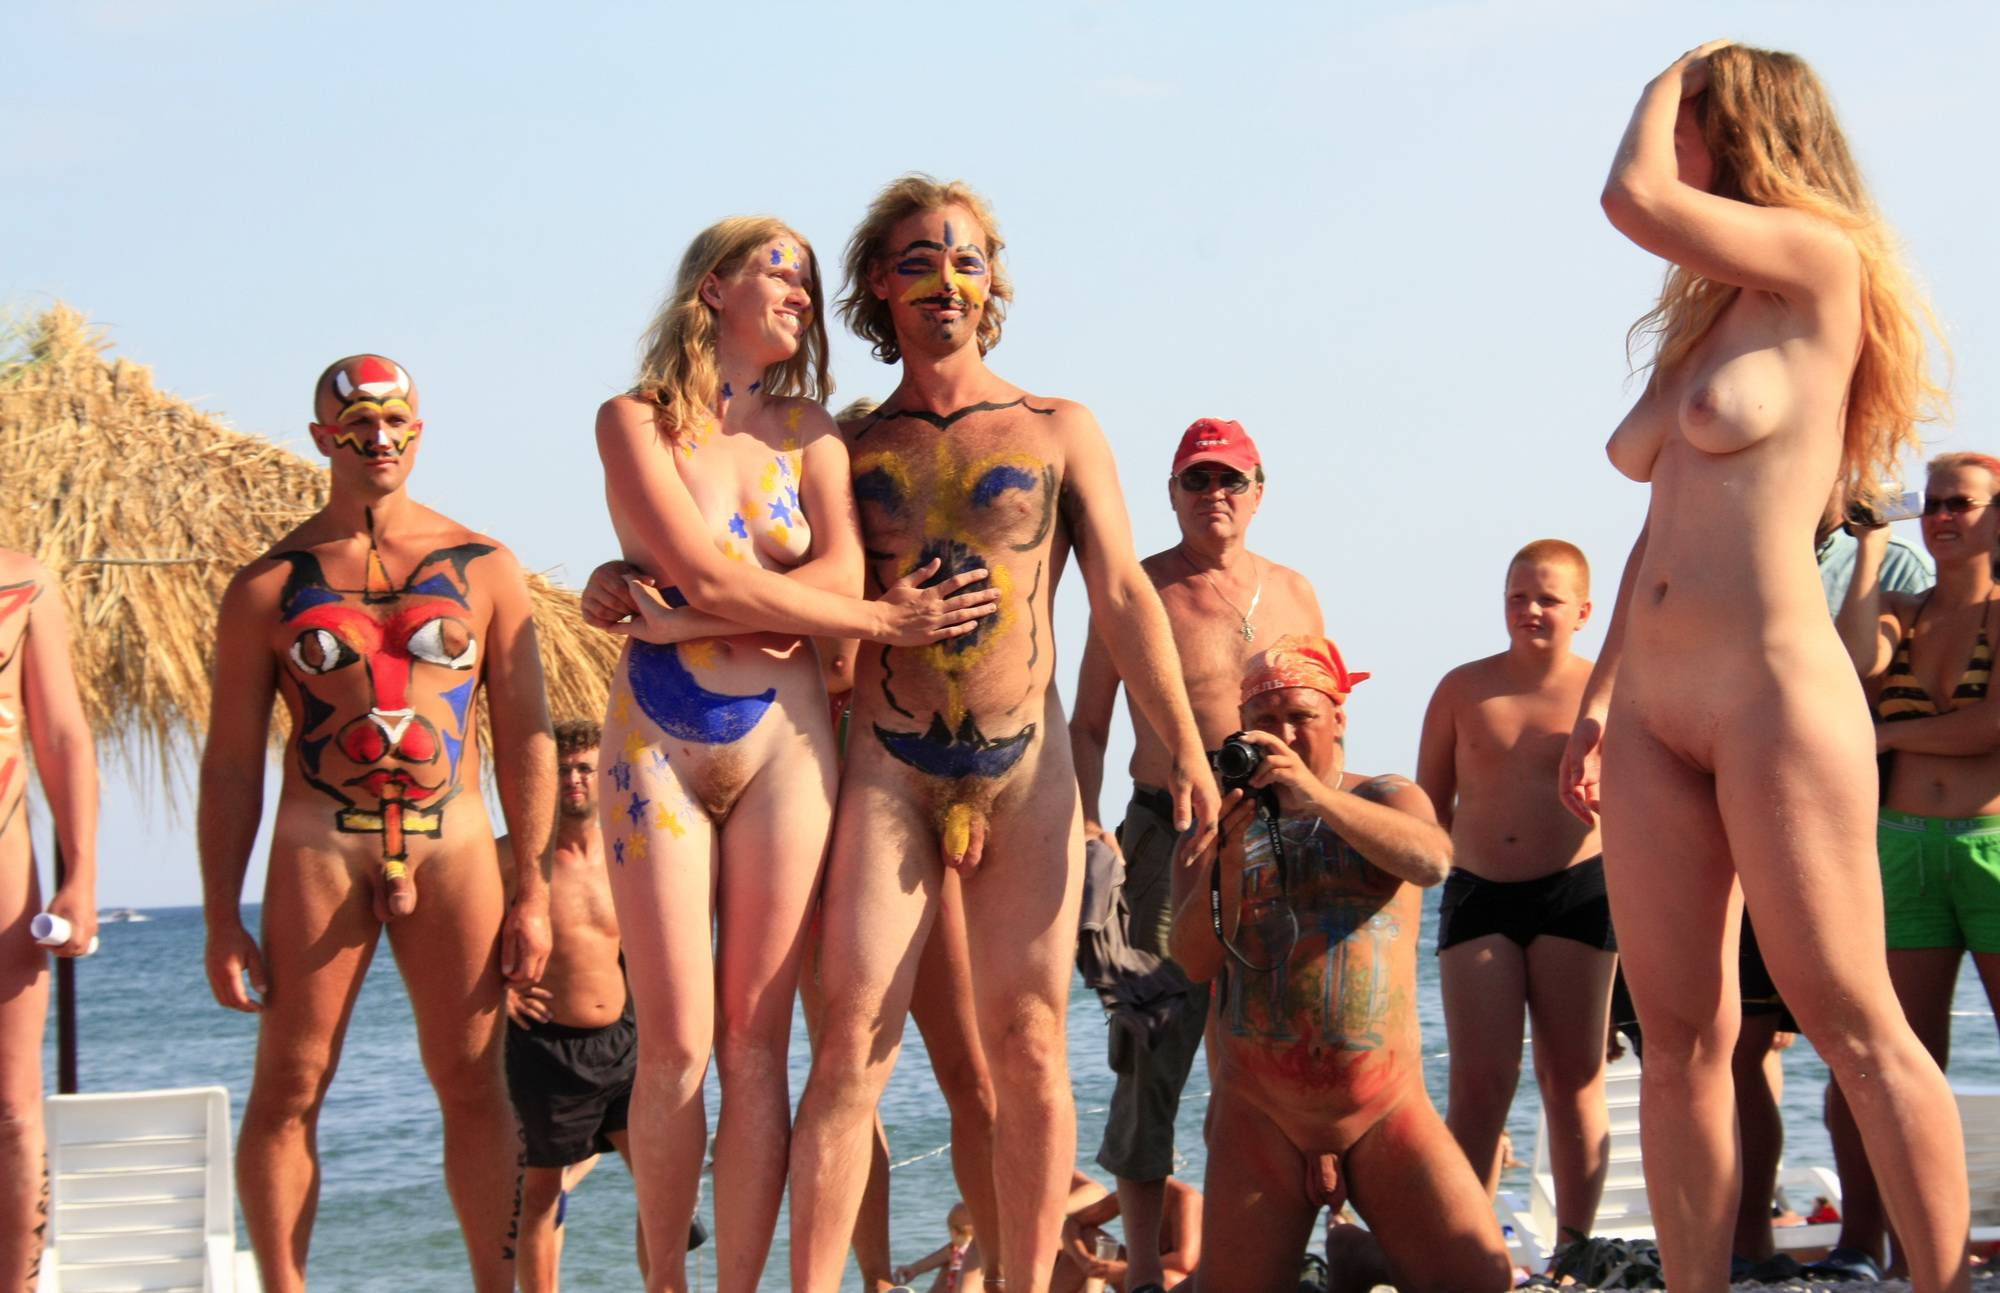 Pure Nudism Photos-Neptune Standing Crowds - 2